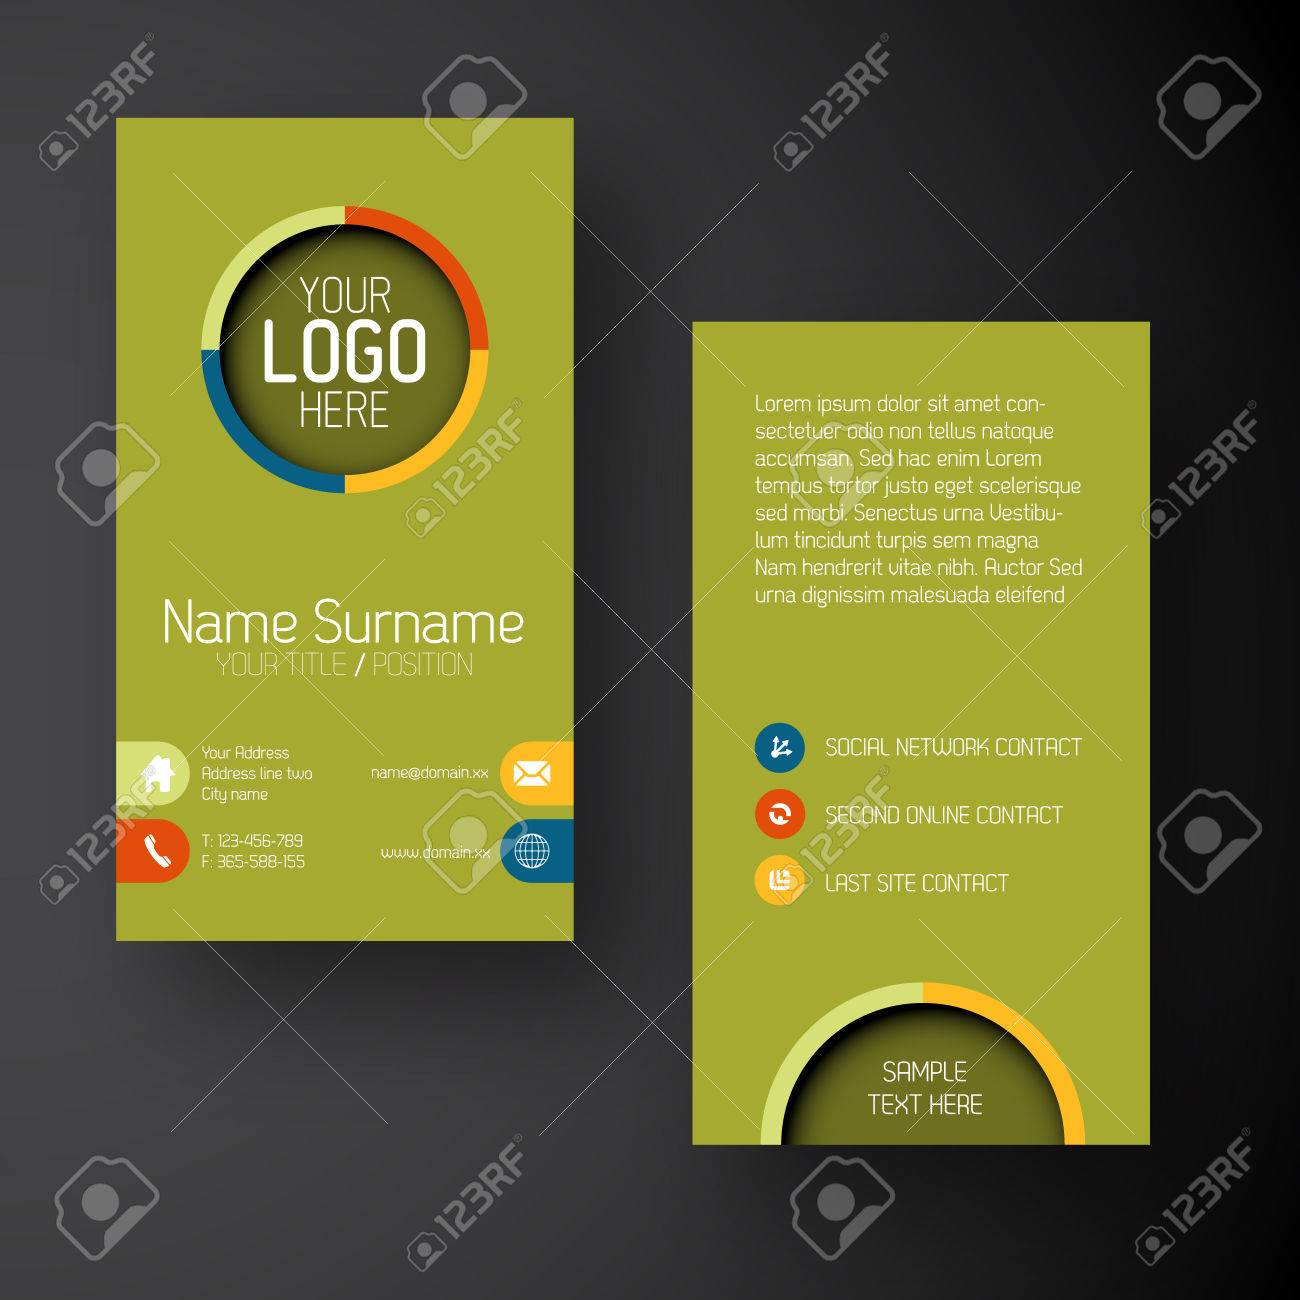 Modern Simple Green Vertical Business Card Template With Some - Business card vertical template